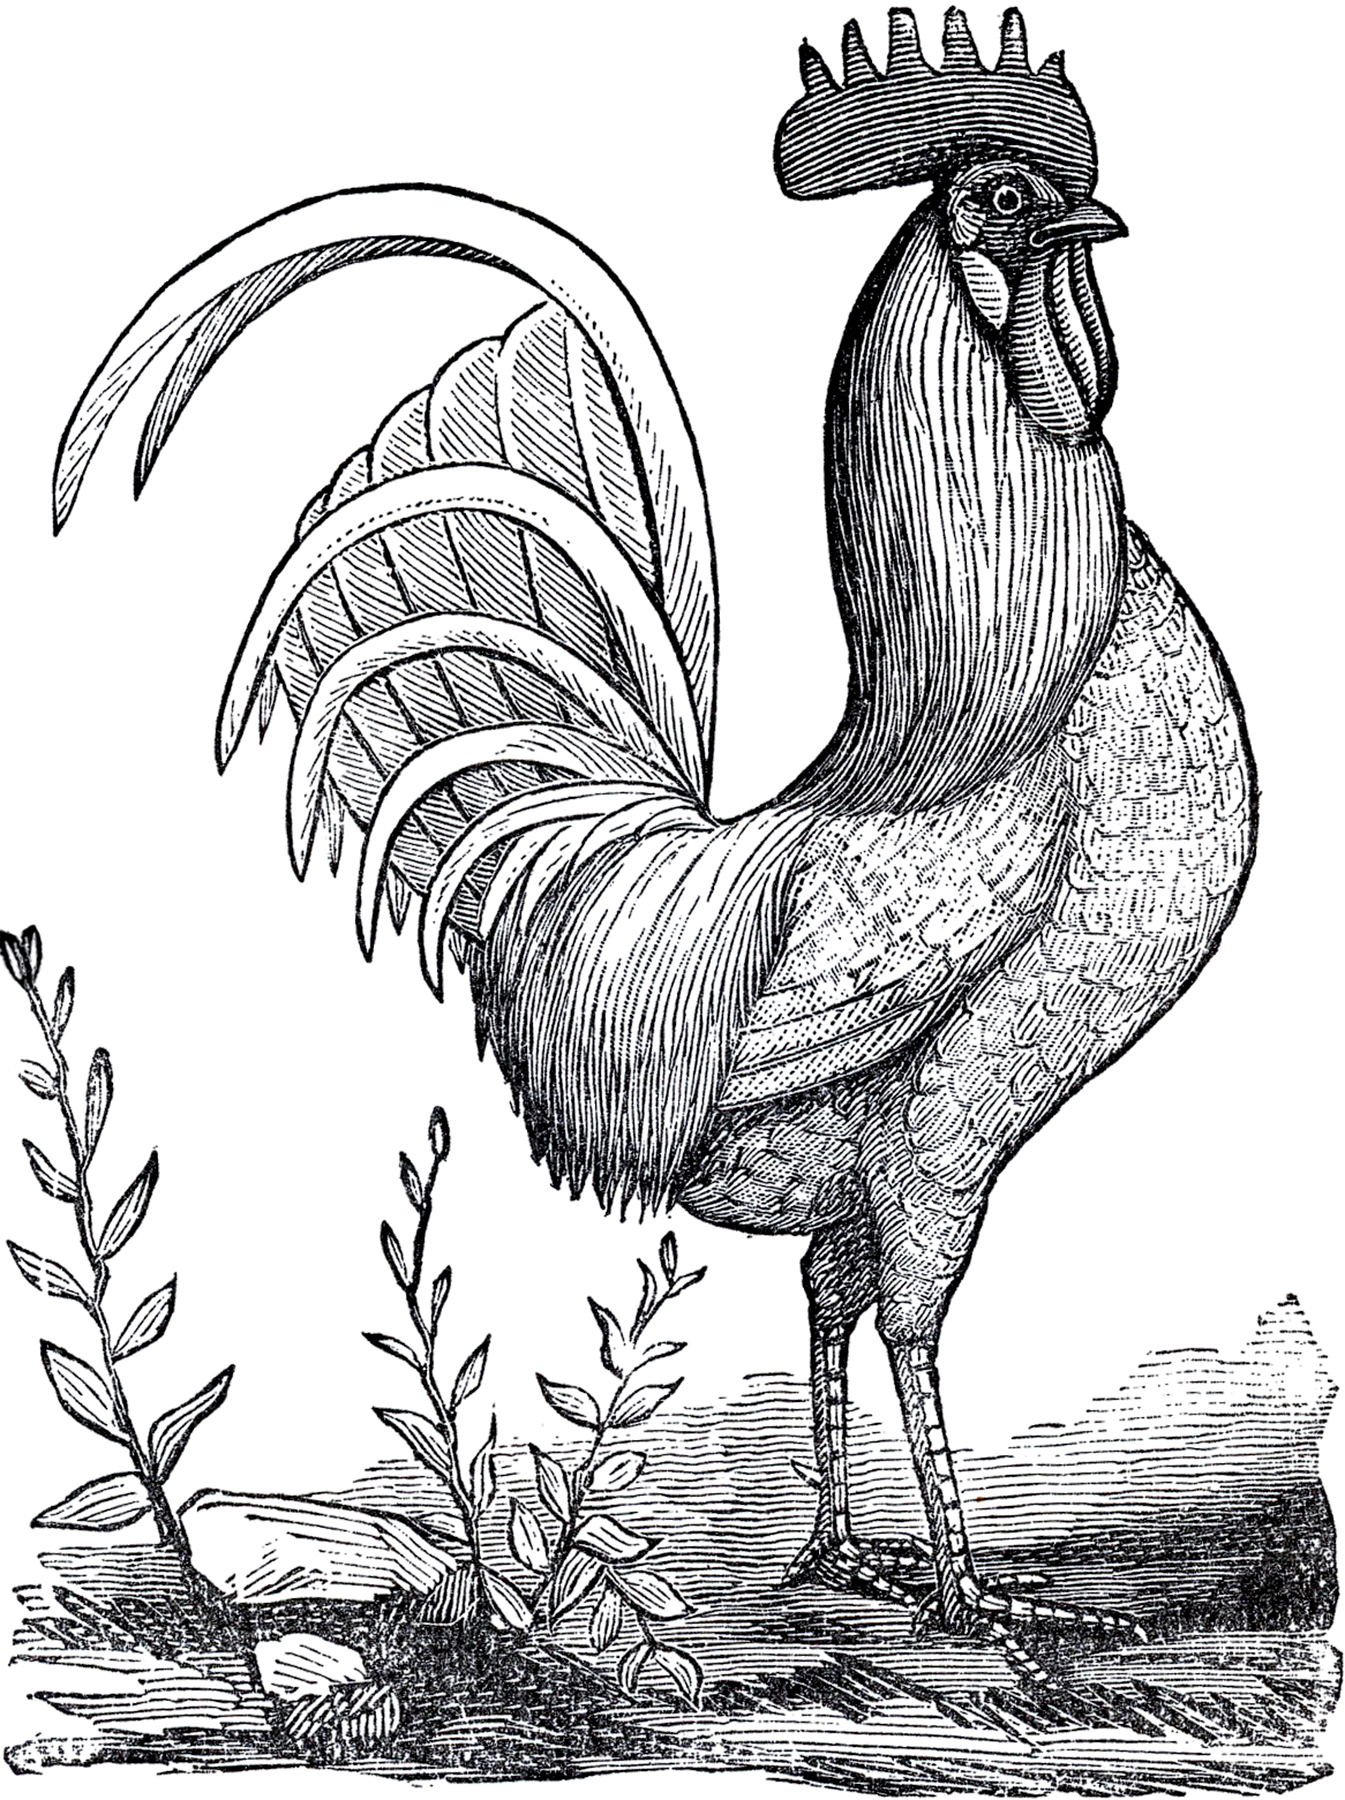 Rooster Line Drawing at GetDrawings.com | Free for personal use ...